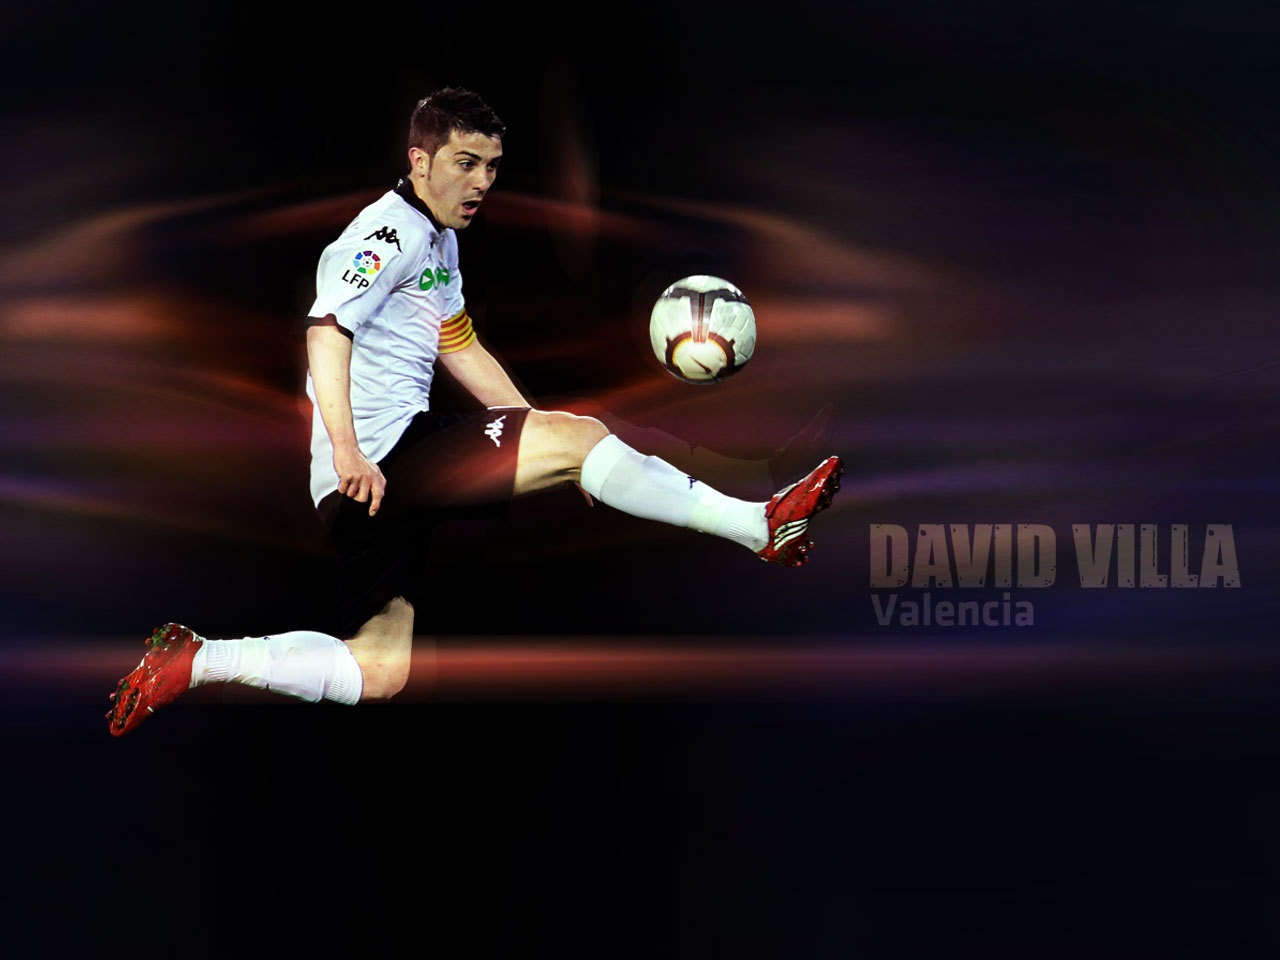 David Villa New HD Wallpapers 2013 All About HD Wallpapers 1280x960